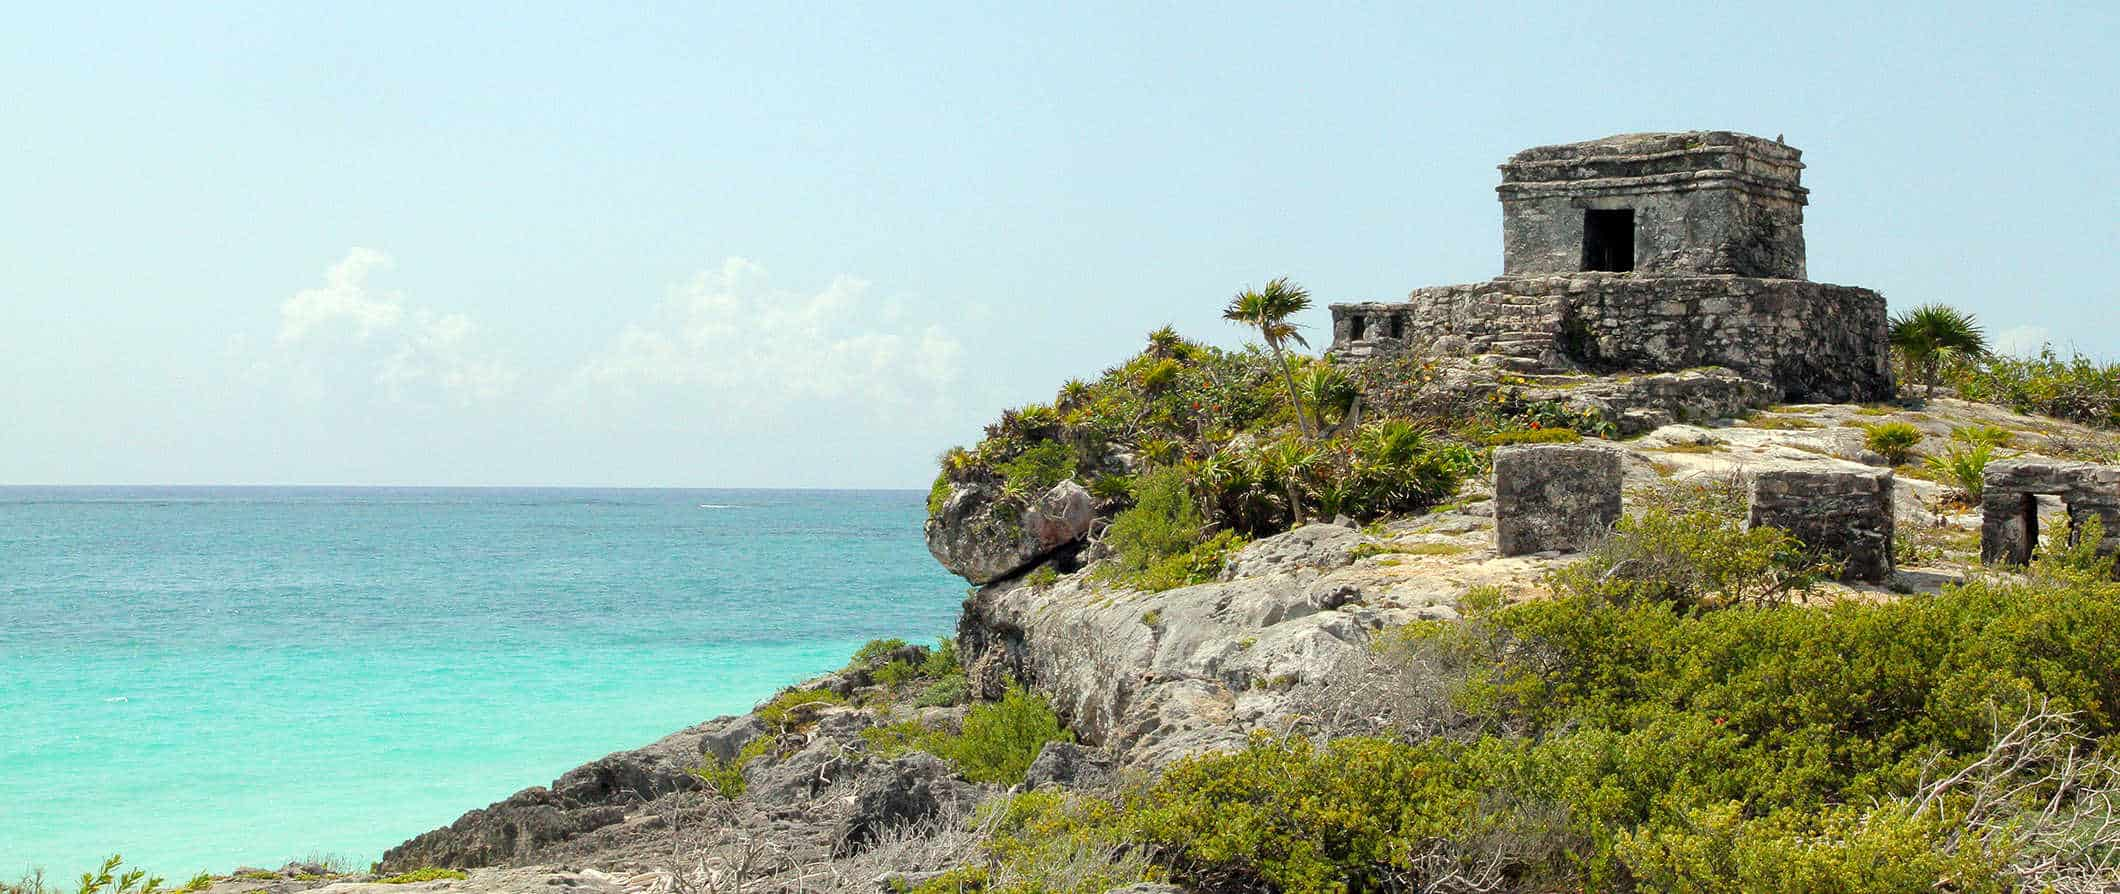 Tulum, Mexico and the Gulf